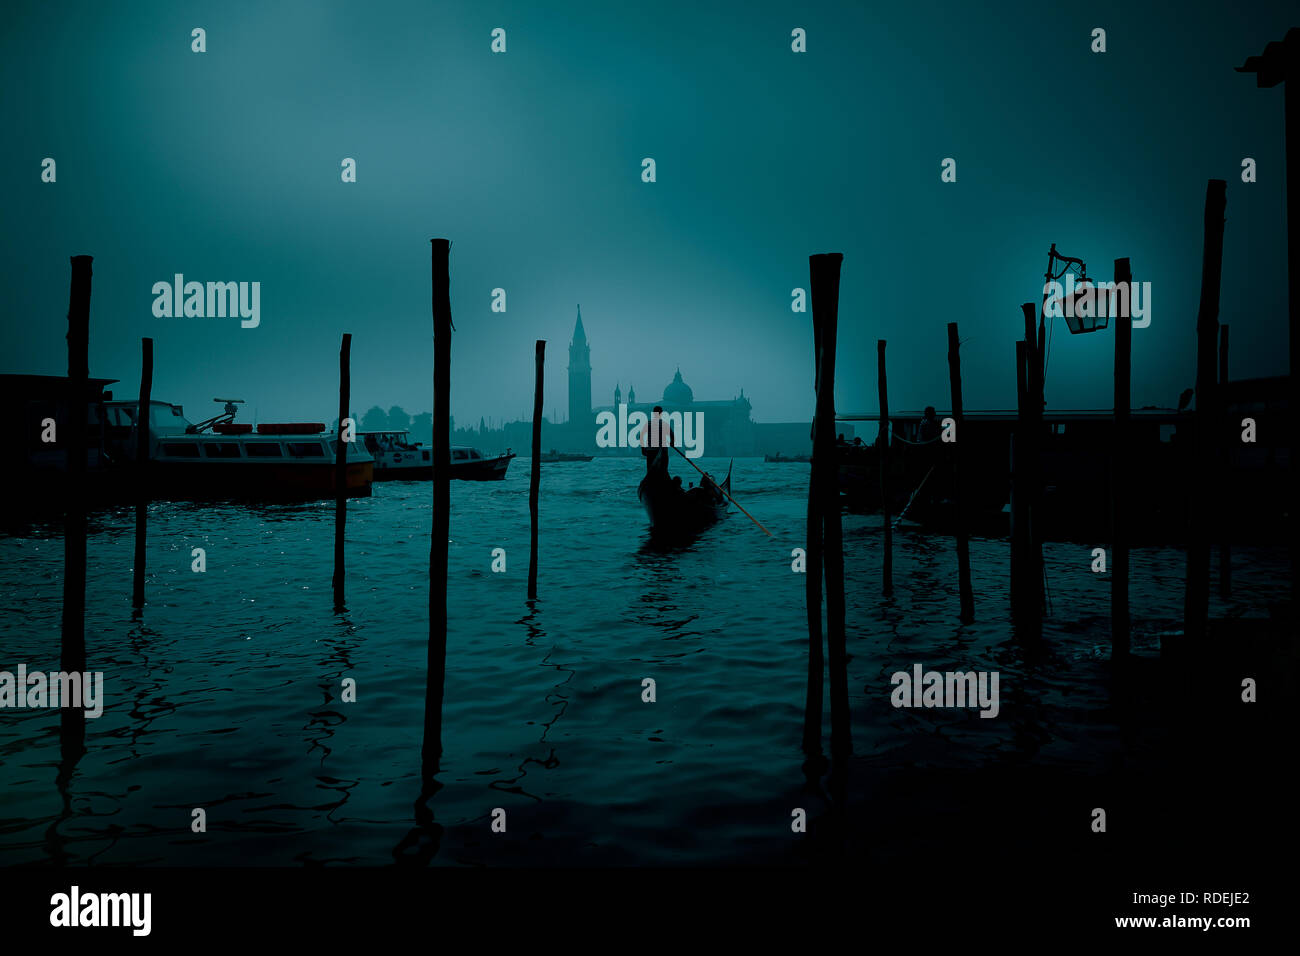 Gondolier in the mystical night - Stock Image